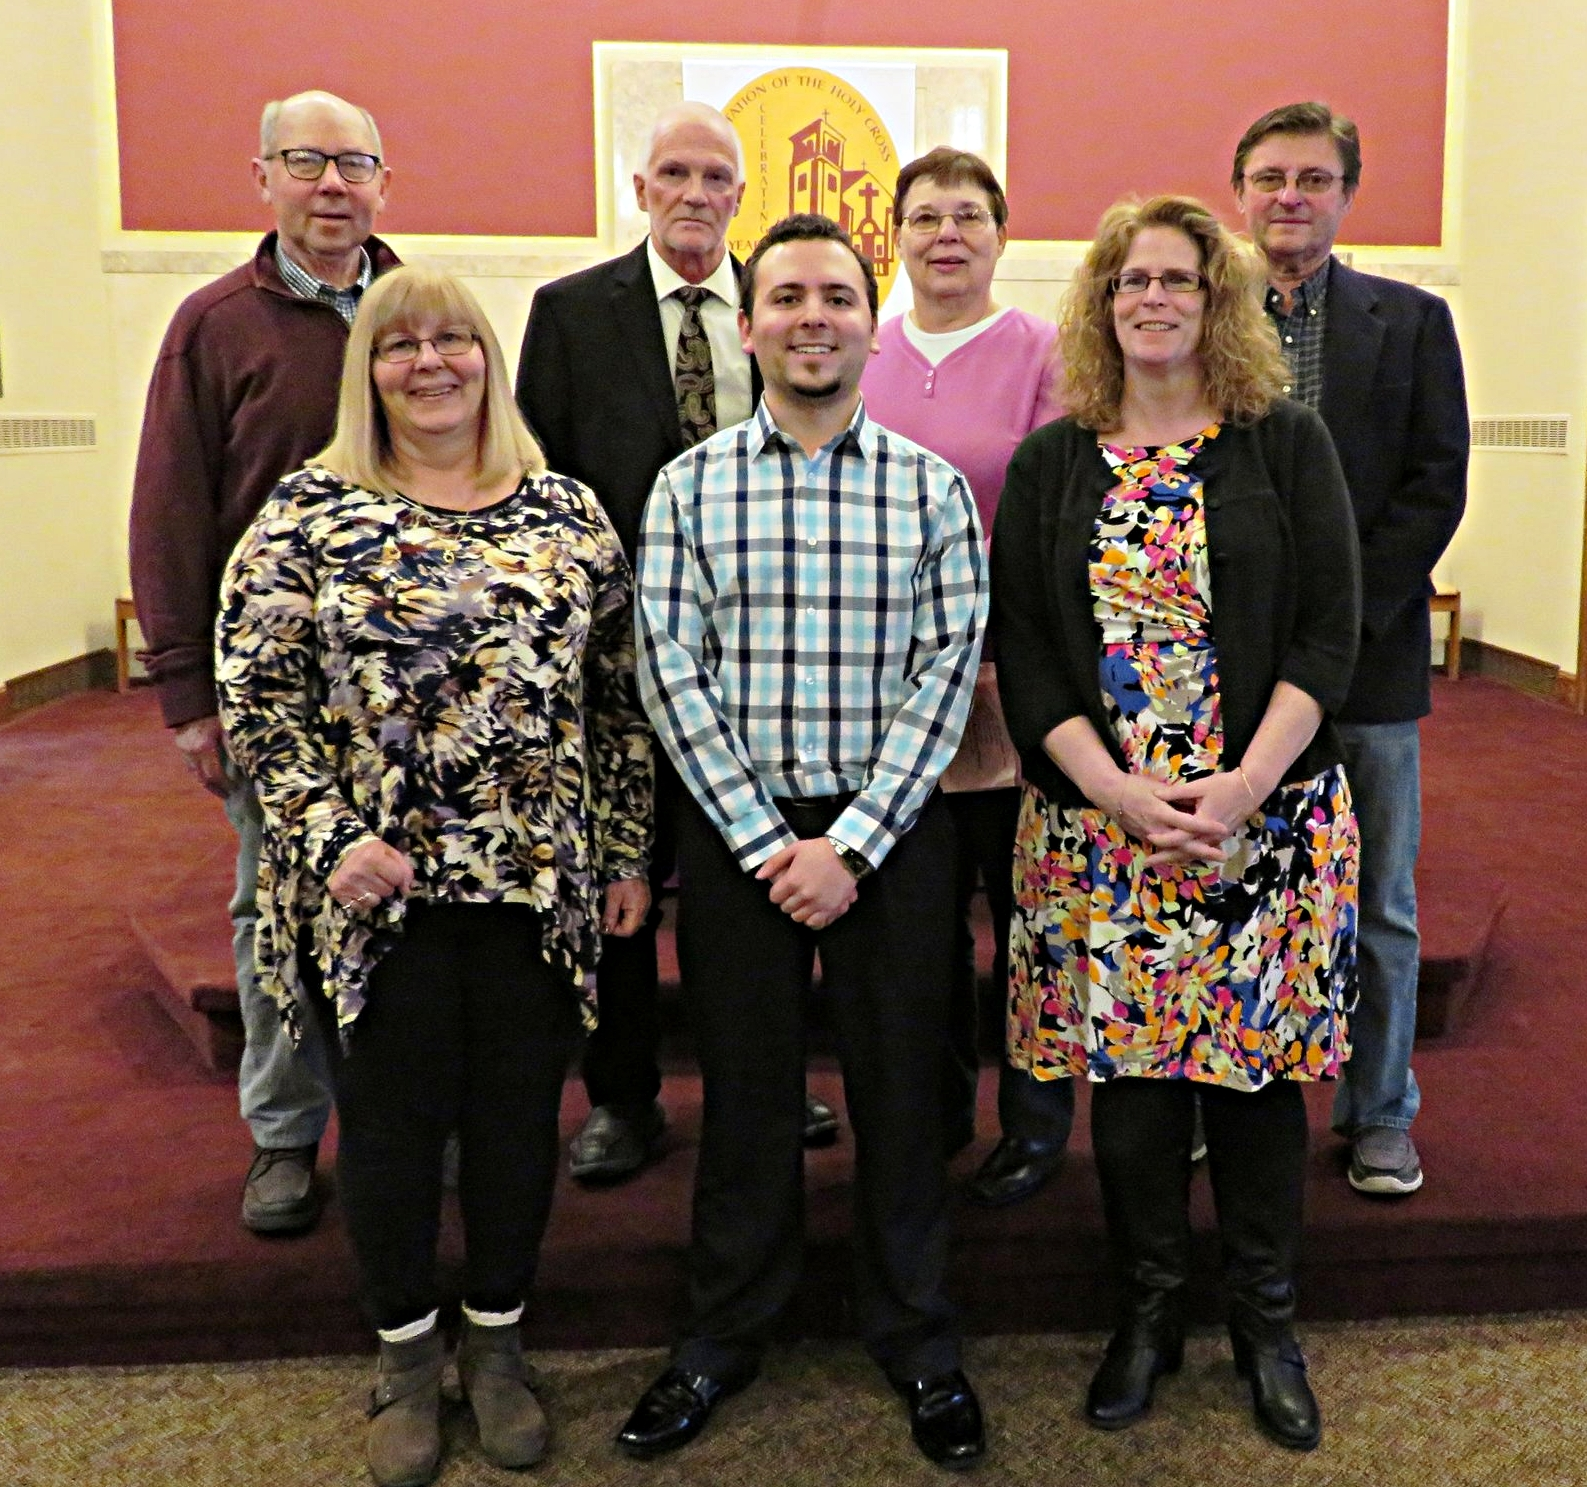 Pastoral Council - Pictured first row L-R: Joan Cunard, Dominick Costantino Jr., and Diane Fitzgibbon.                       Second row L-R: Frank Phillips, Barry Kaminski, Ann Williams, and Frank Sokola. Missing from photo: Susan PointekThe members of this council are appointed by the Pastor. They work on goals and visioning for the future and focus on the areas of WORD, WORSHIP, COMMUNITY, and SERVICE.